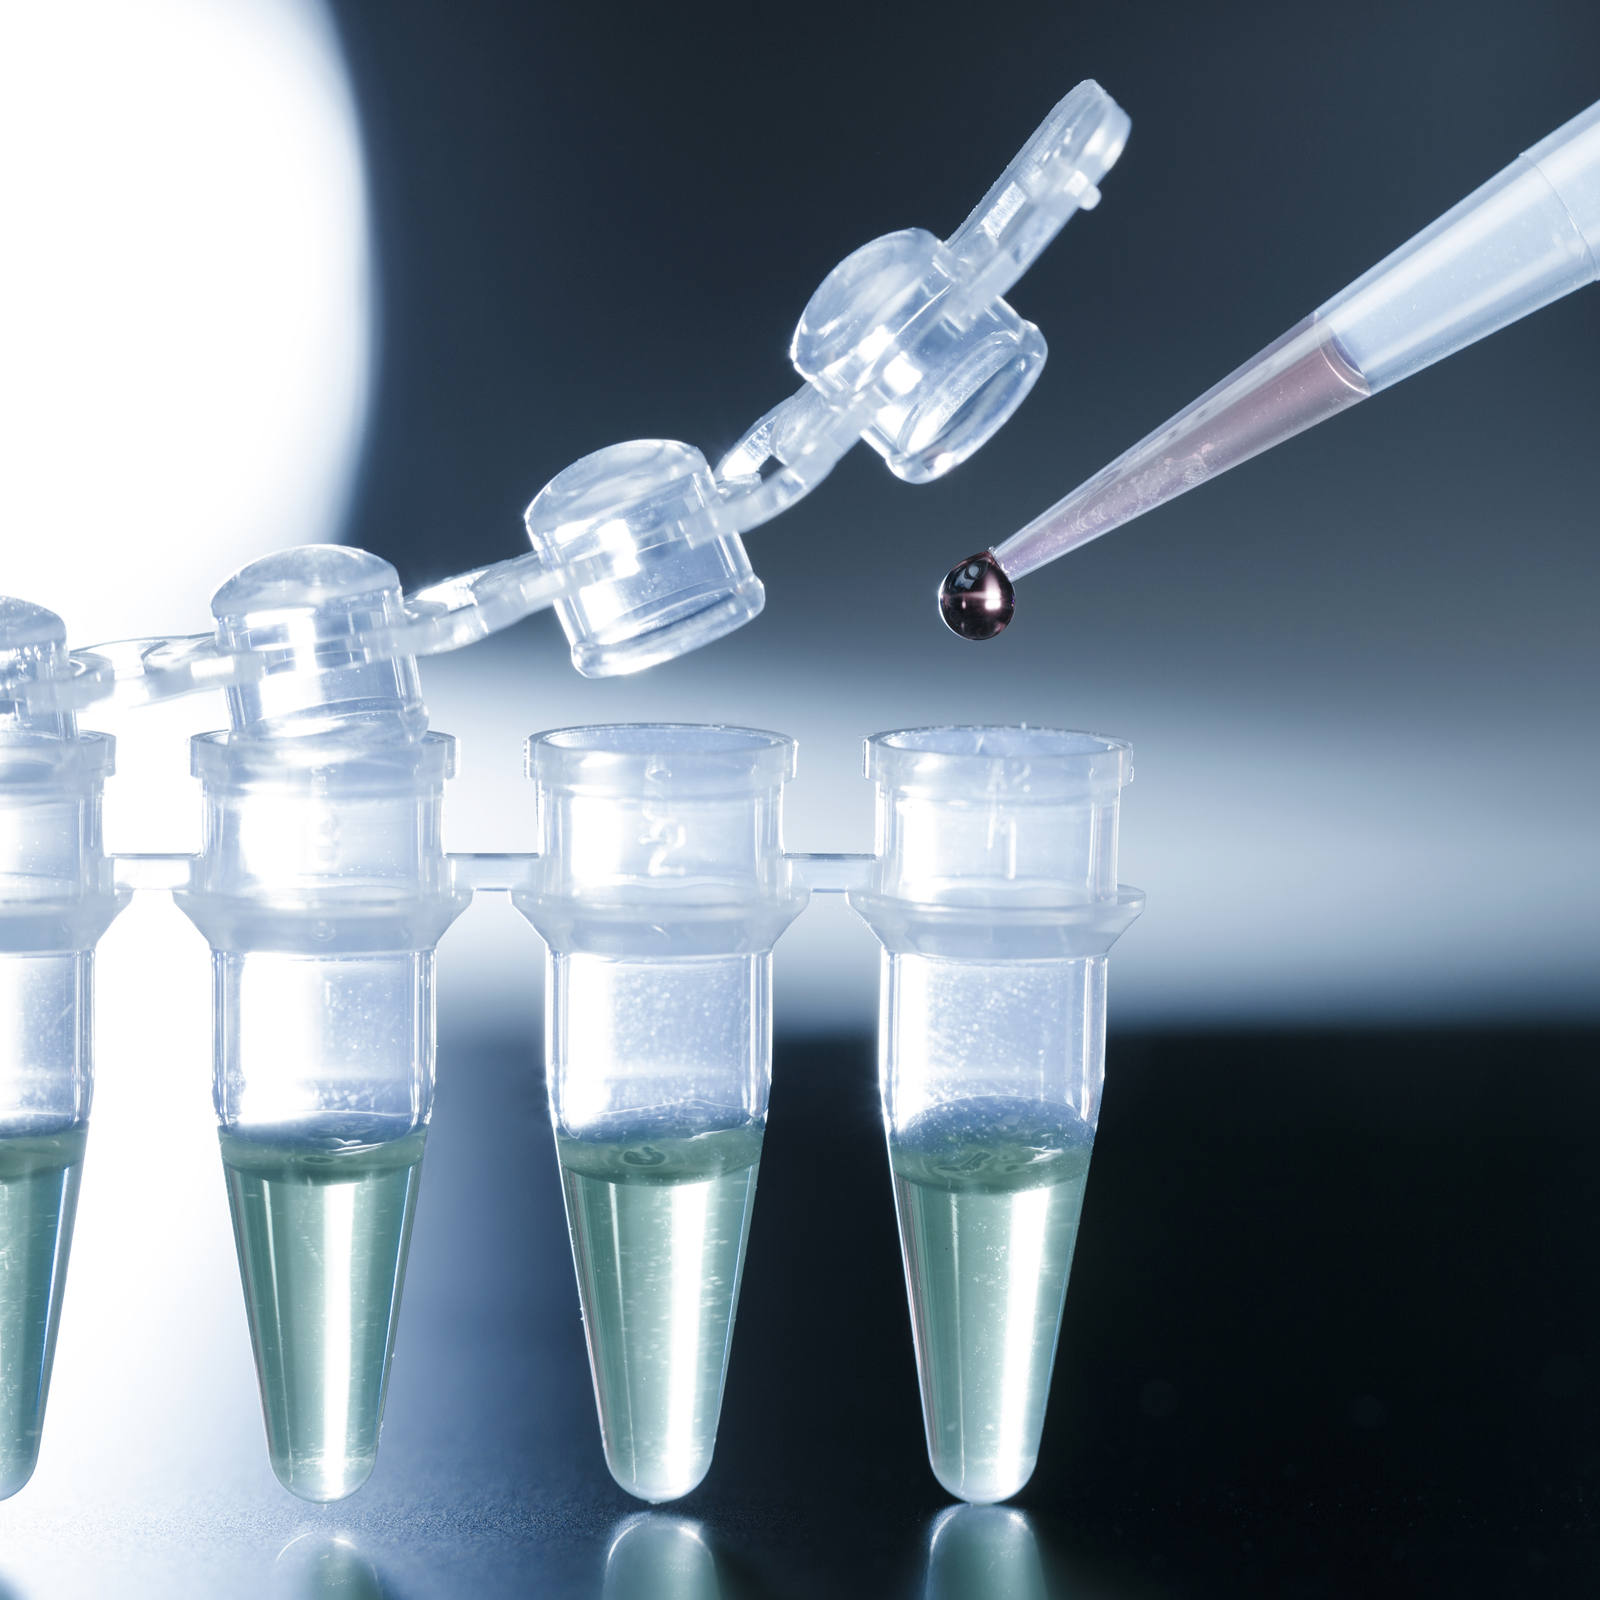 Global Amniotic Product Market 2020 Size, Covid-19 Impact Analysis, key  Insights Based on Product Type and Regional Demand Till 2025 – Bulletin Line